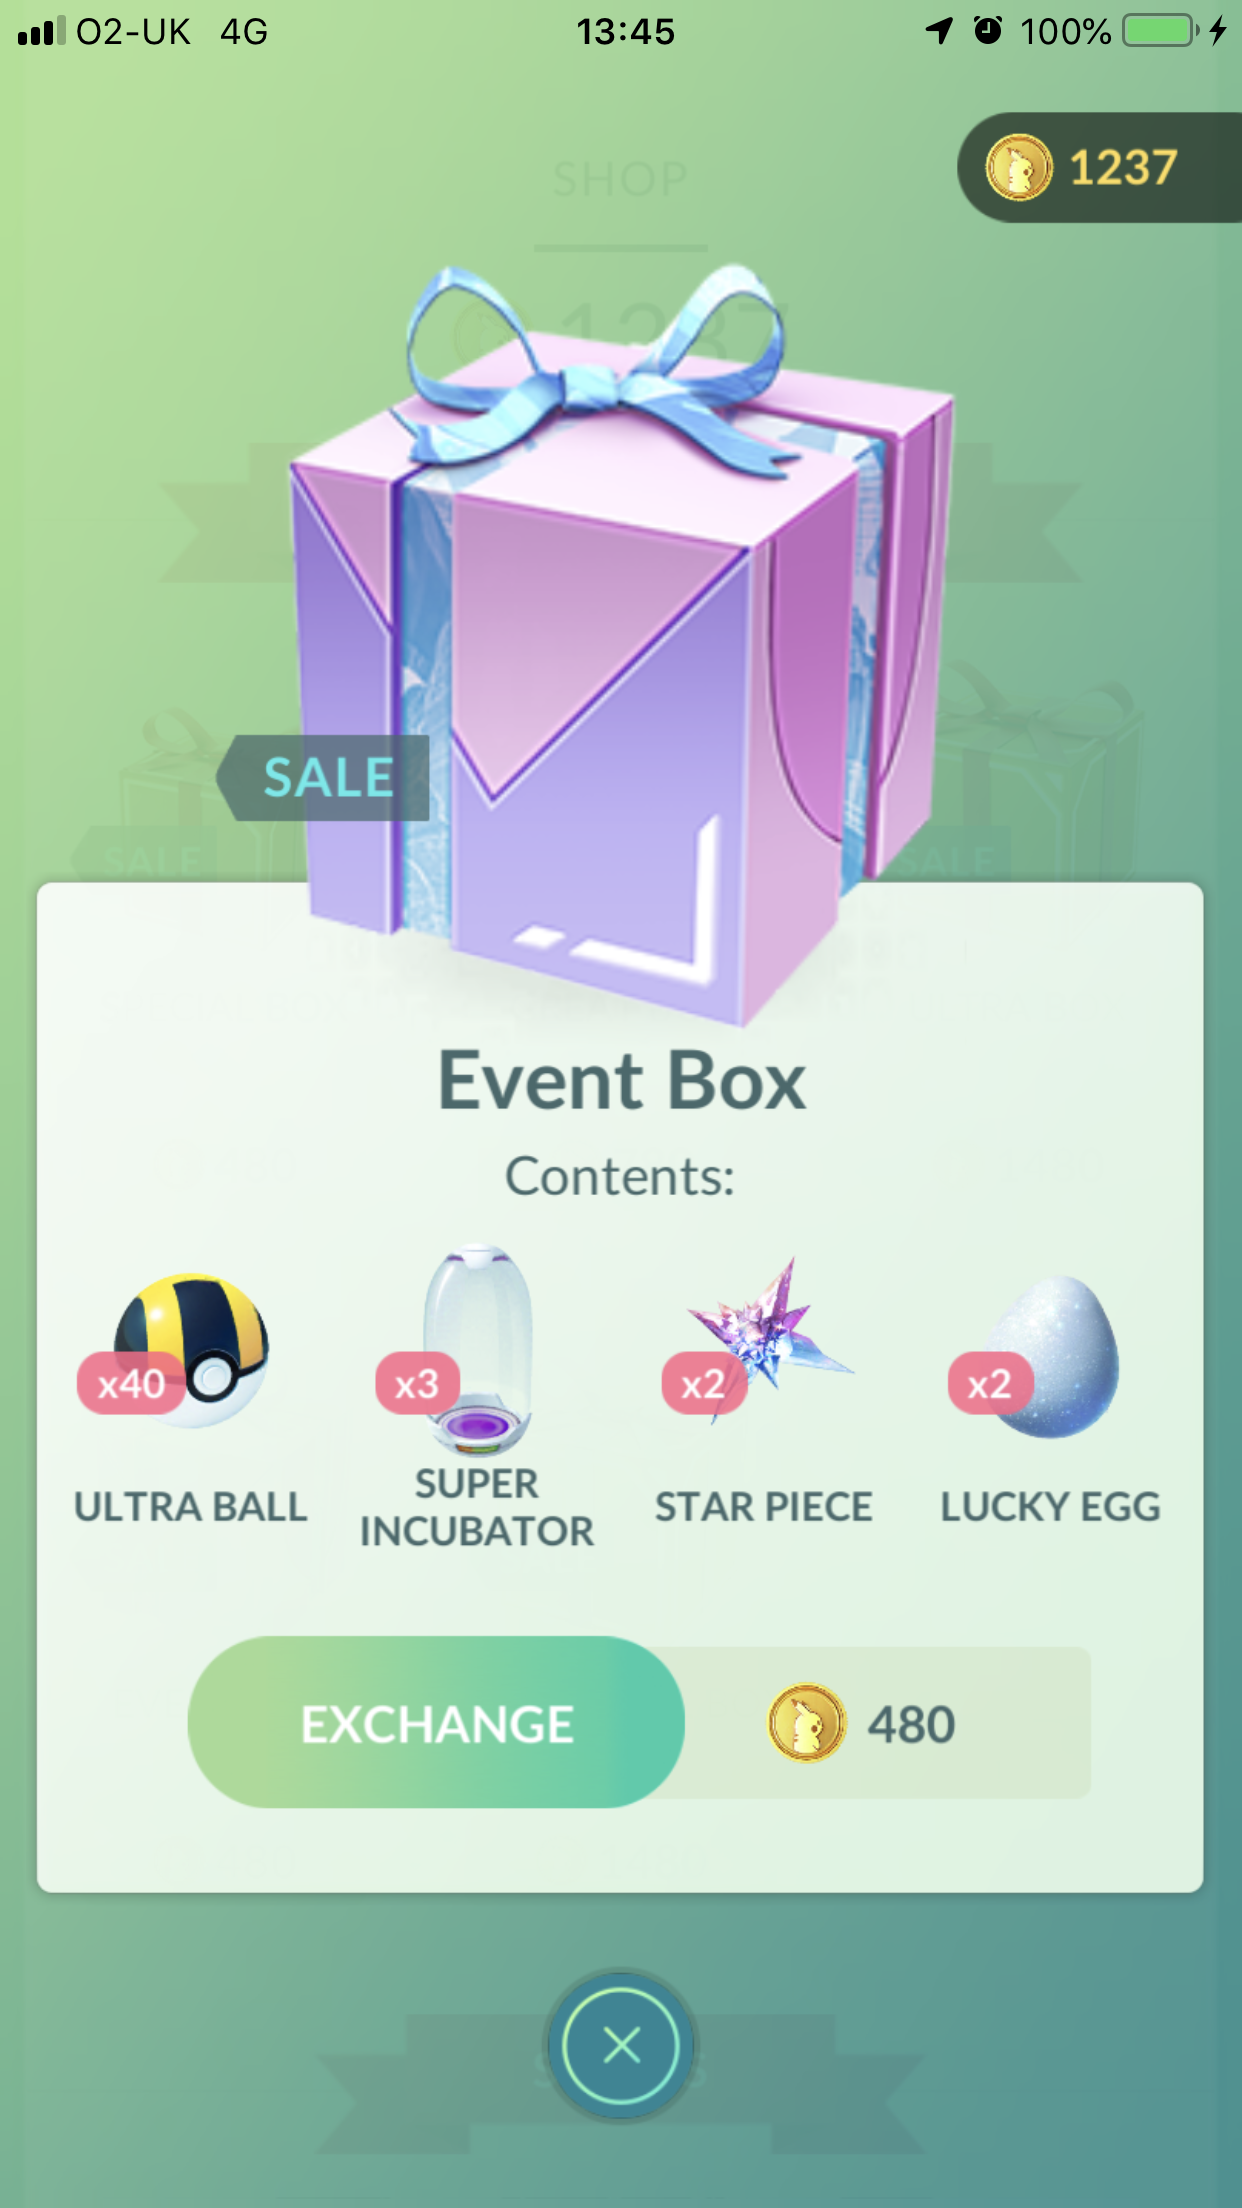 Breaking News Roundup - Go Fest Dortmund - image of new event box